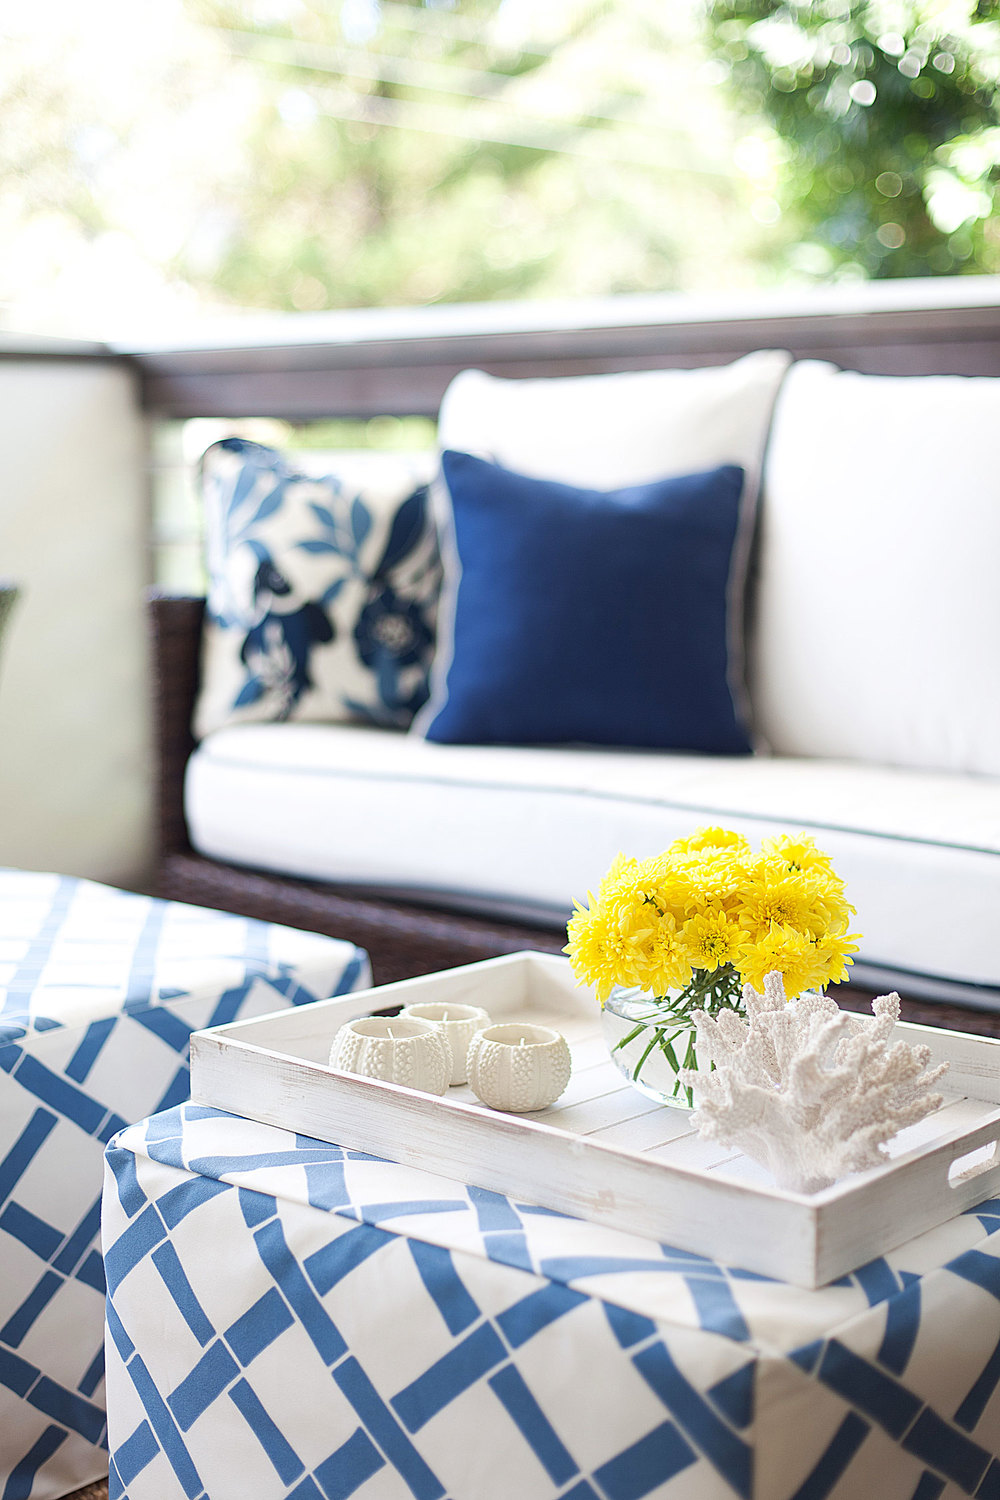 outdoor-fabric-check-geometric-blue-white-outdoor-living-setting-diane-bergeron.jpg